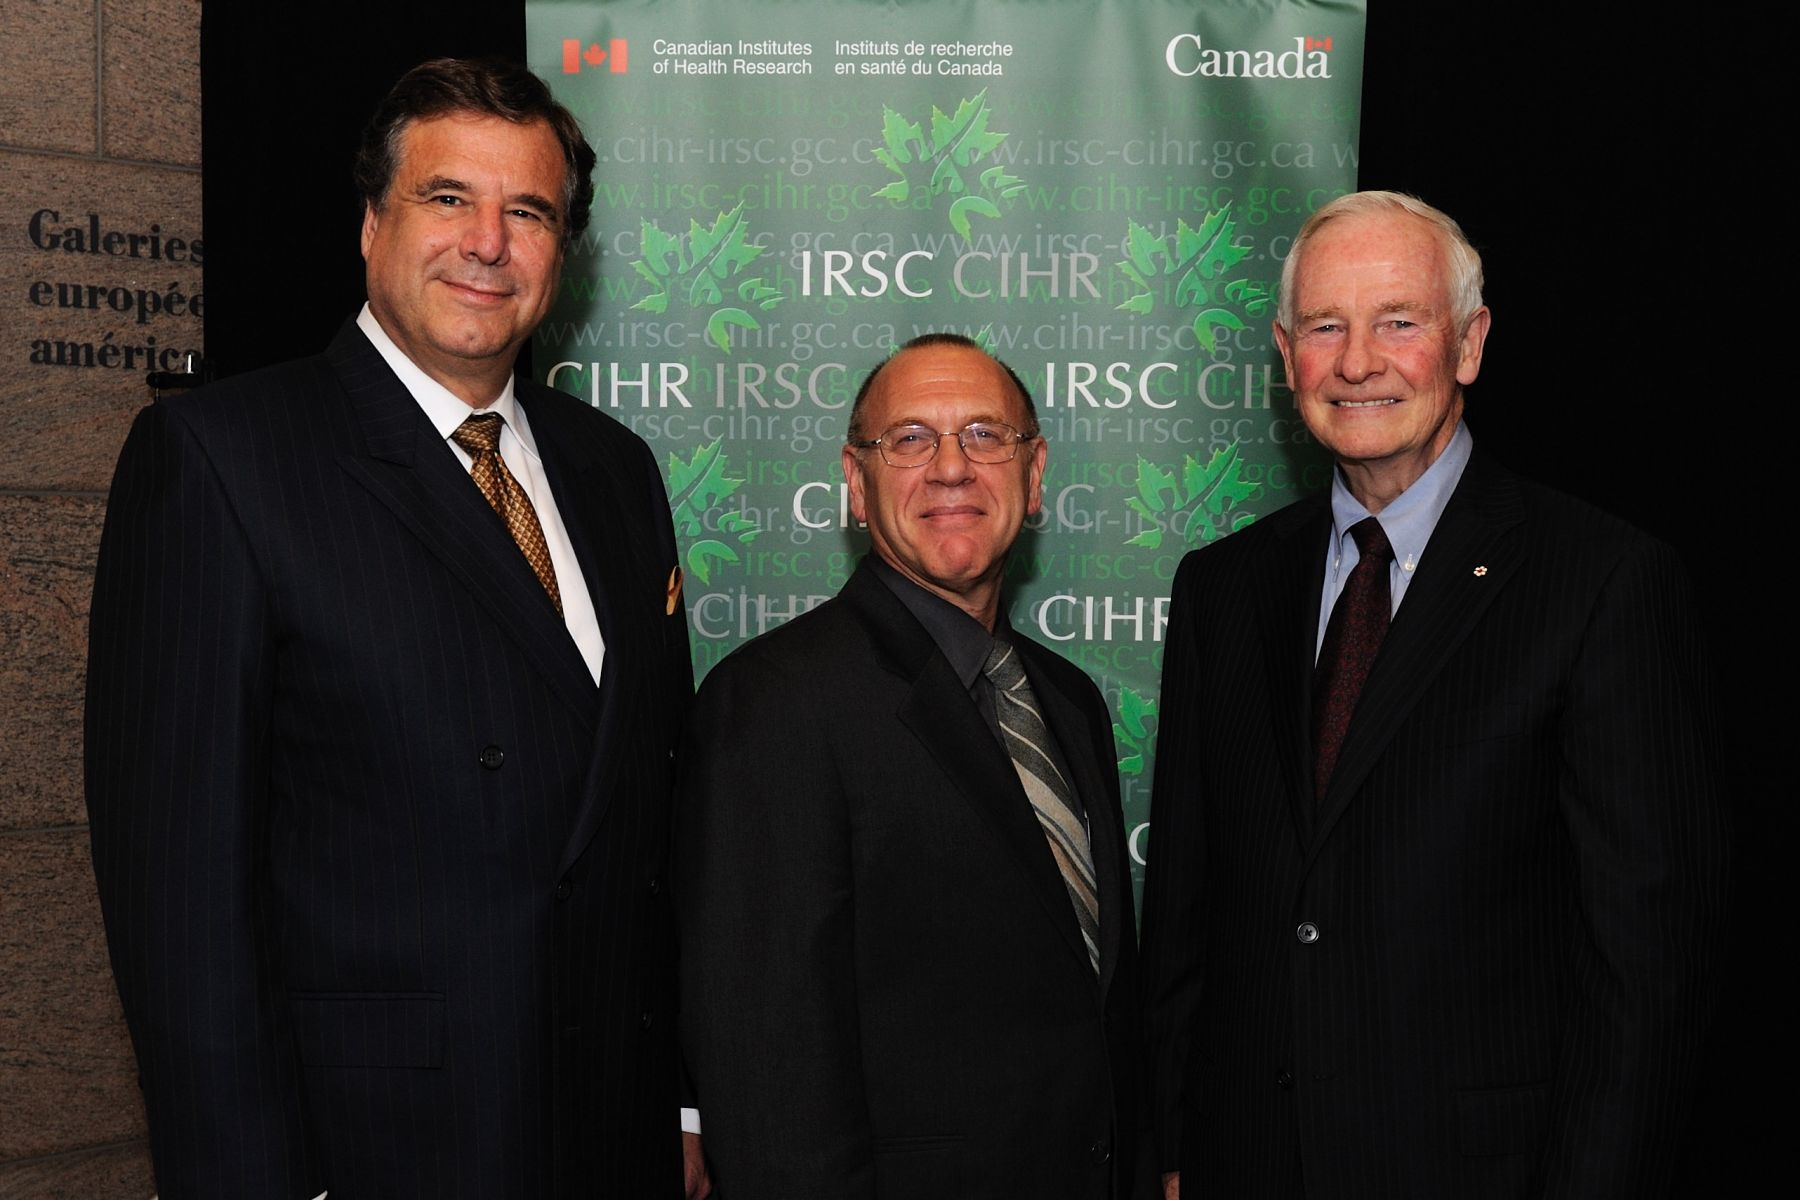 His Excellency and Dr. Beaudet with Dr. Clyde Hertzman (middle), laureate of the Researcher of the Year in Canada Award.